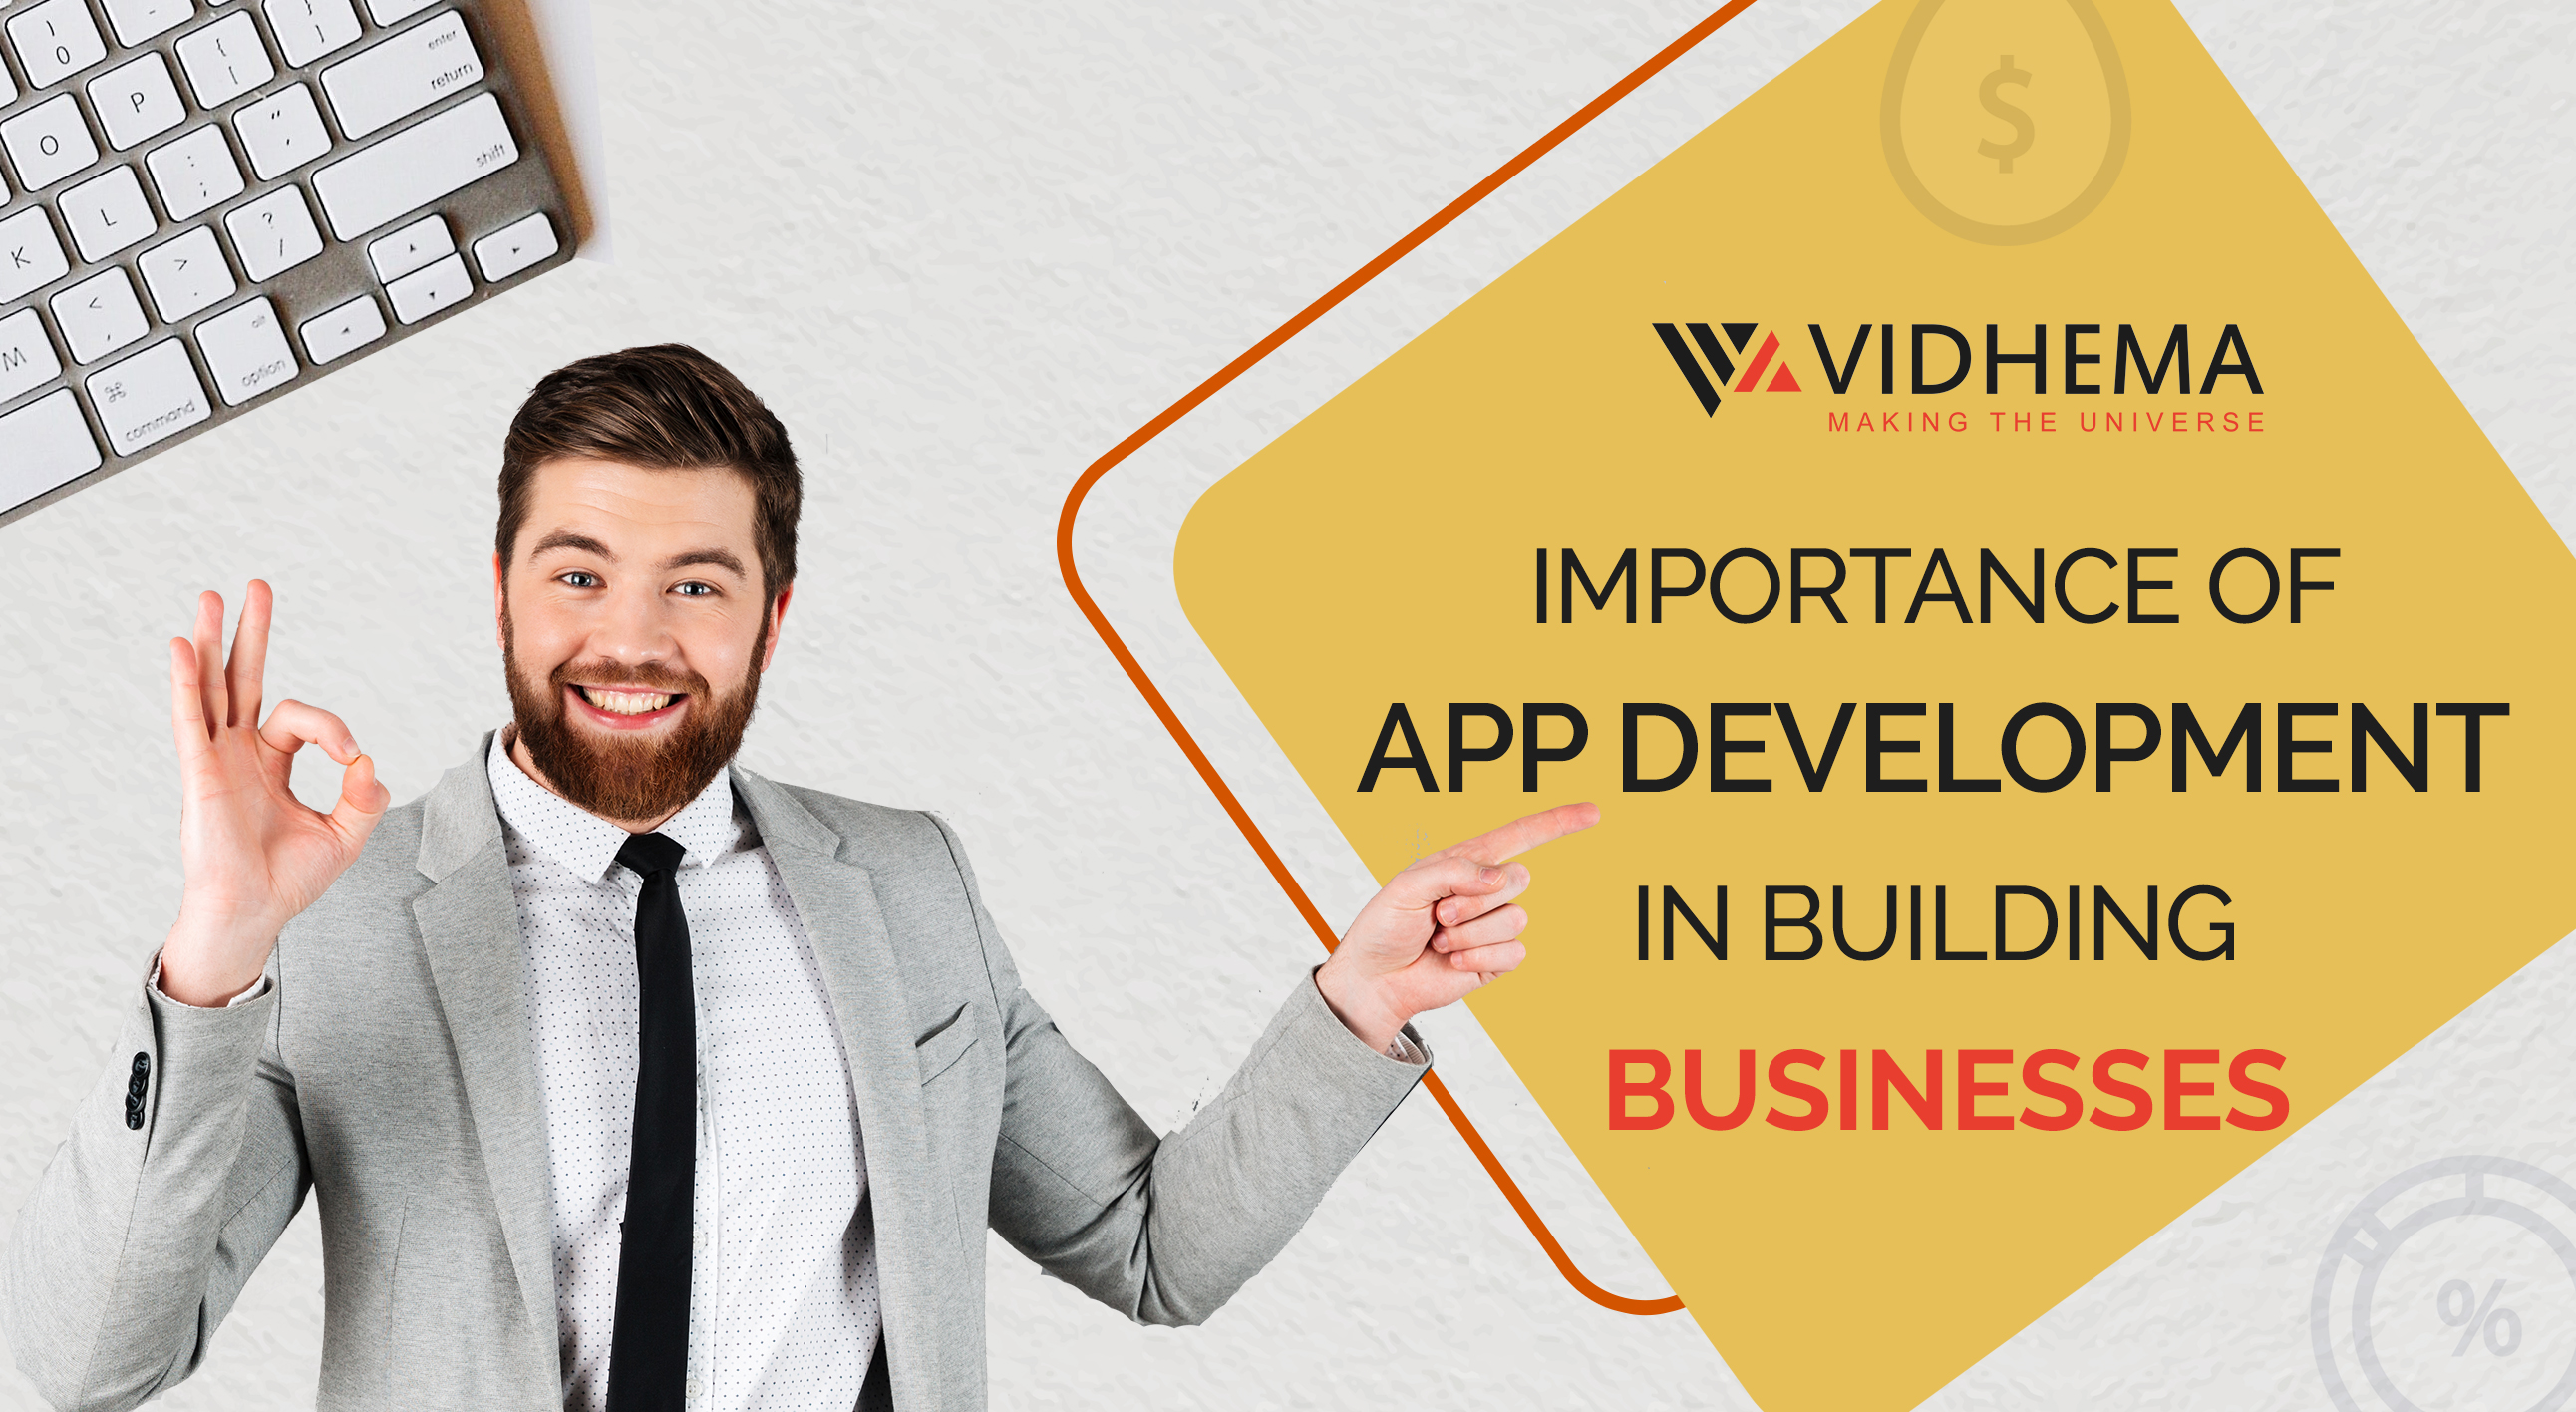 Importance of app development in building businesses